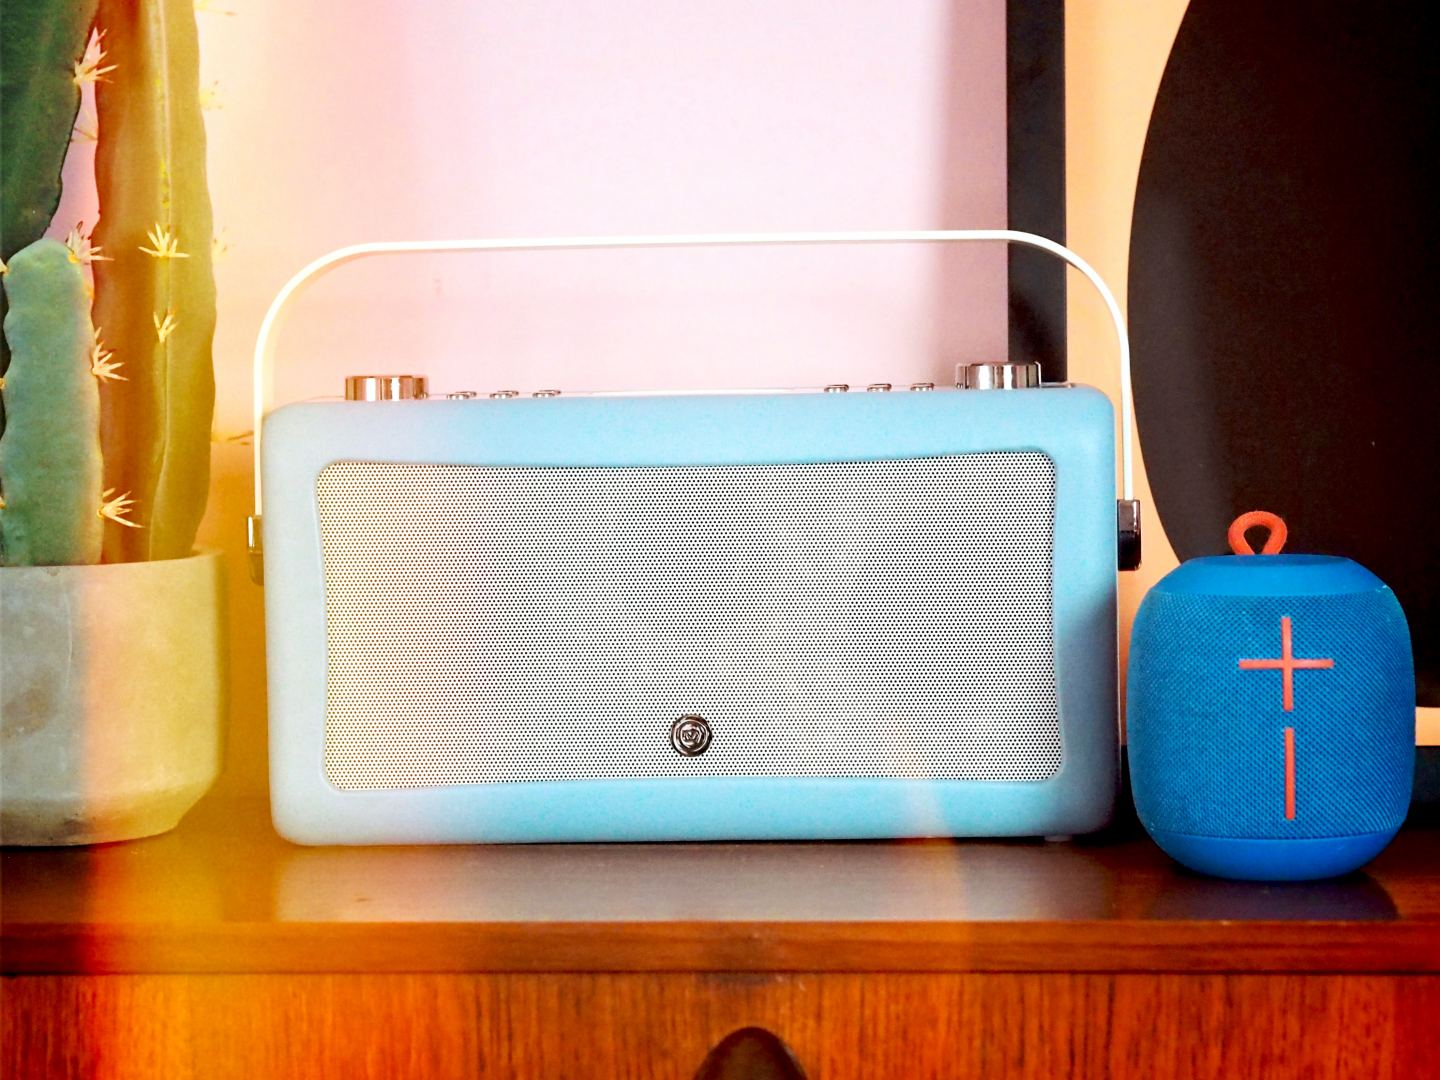 my VQ radio and ultimate ears speaker